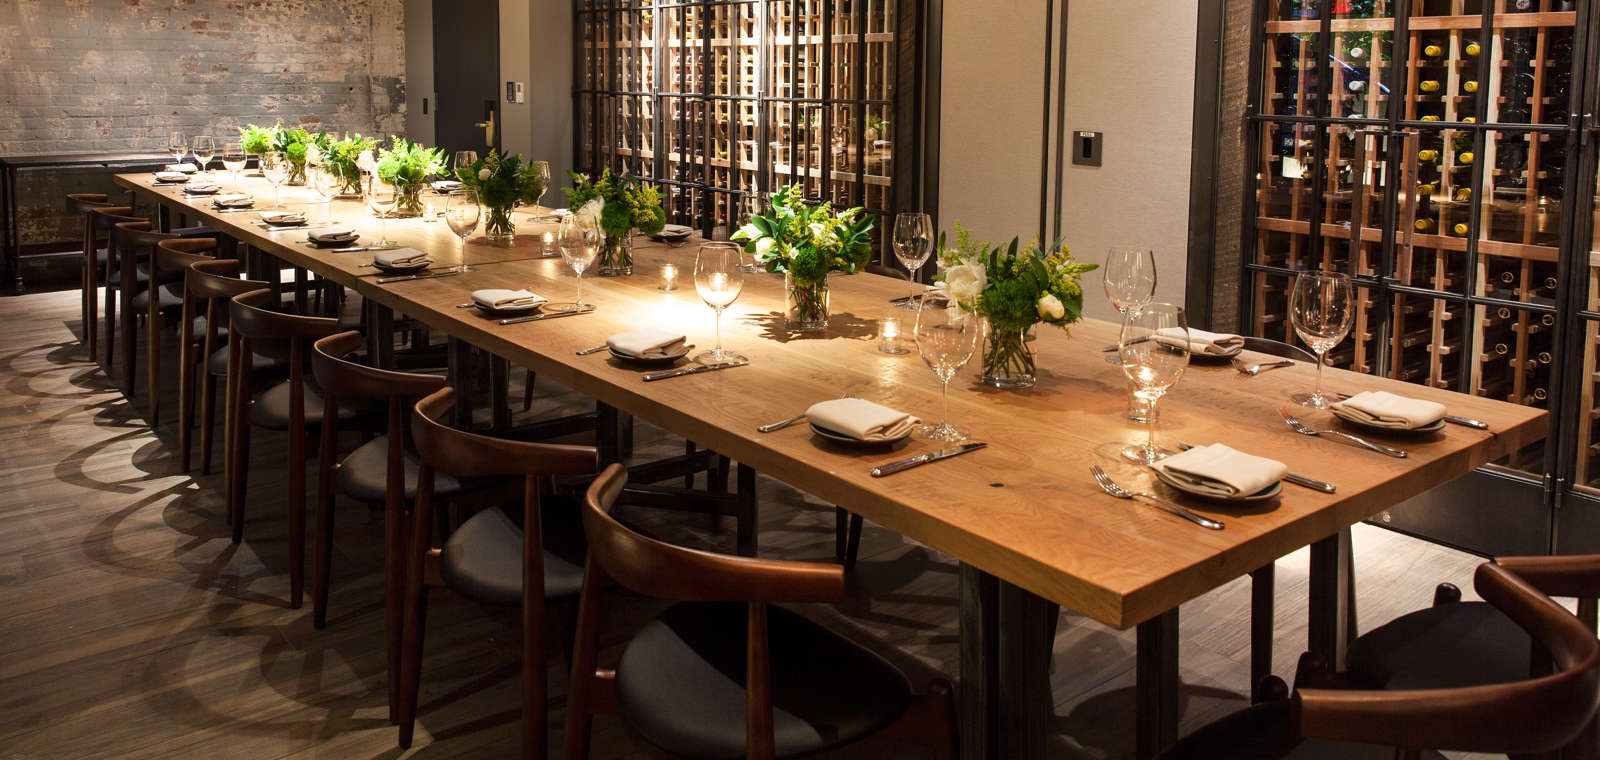 Private Dining Room Table With Flowers